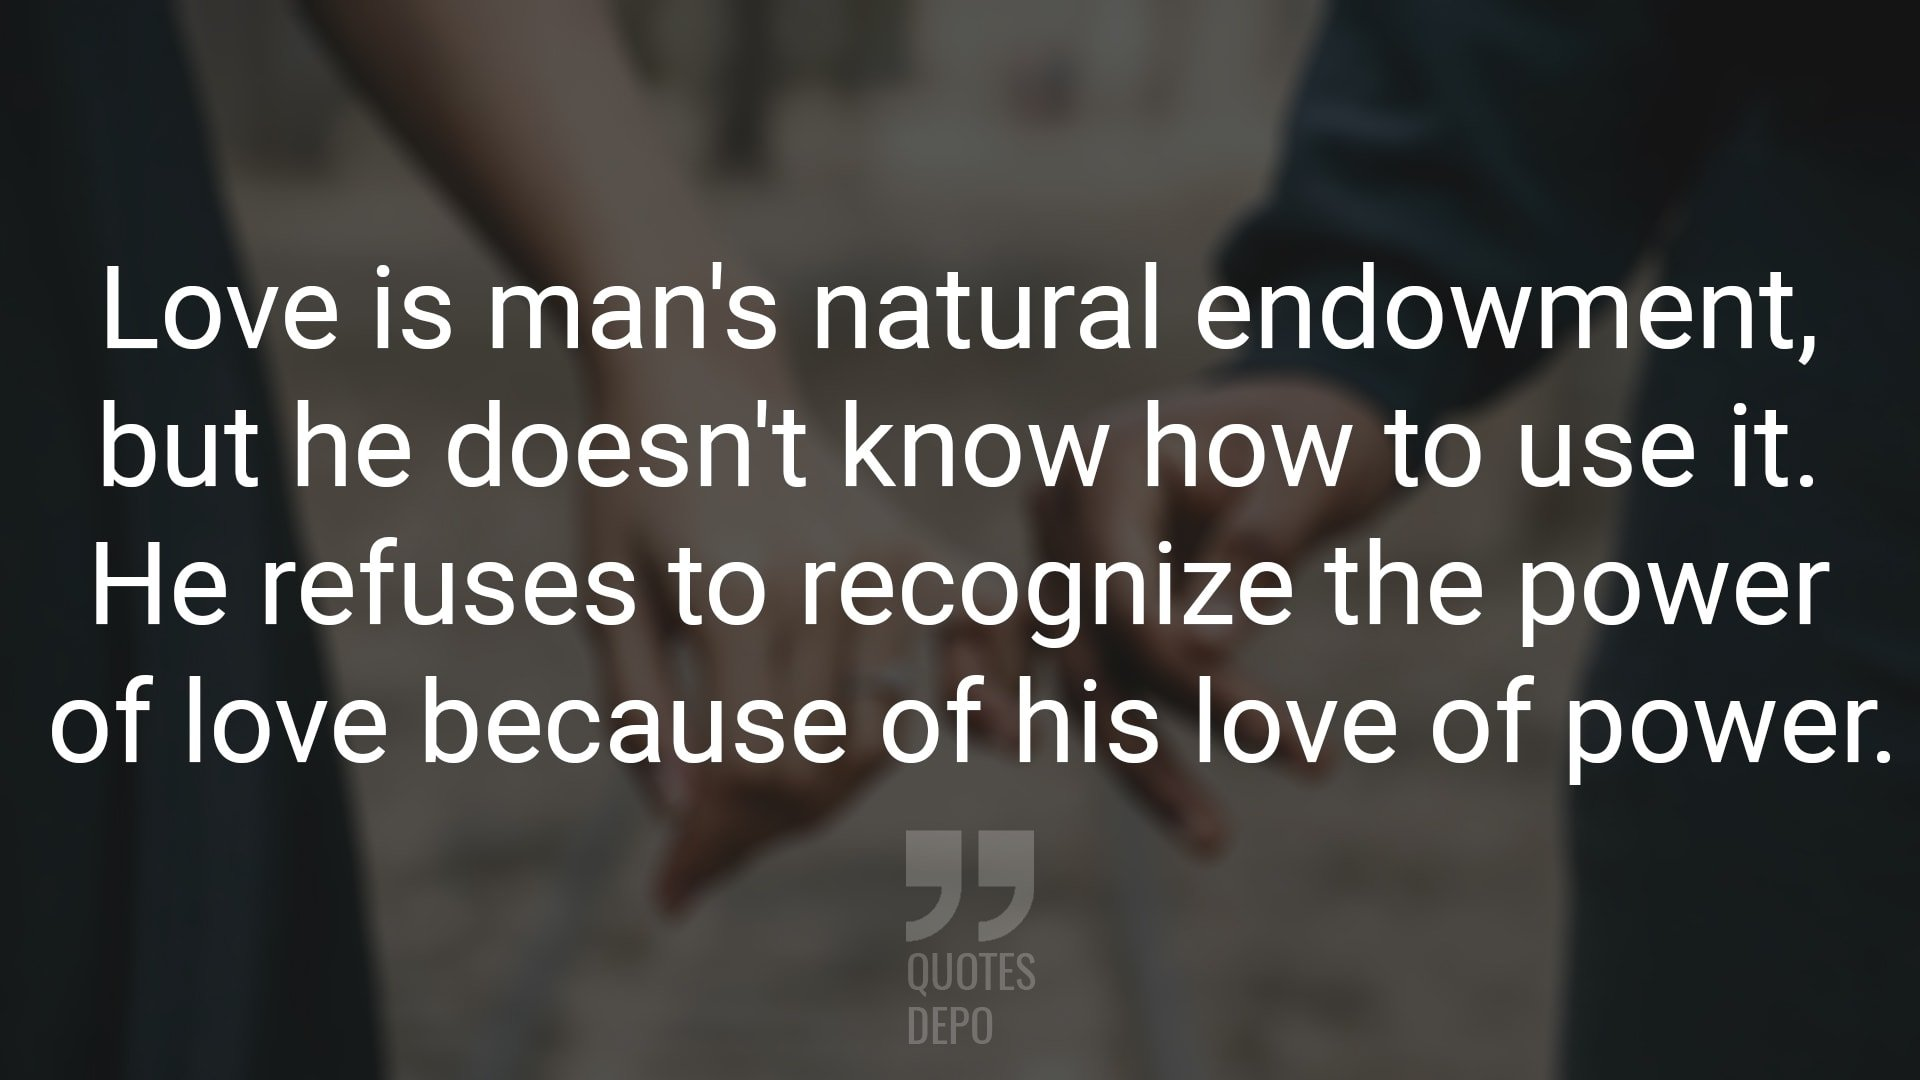 Love is Man's Natural Endowment